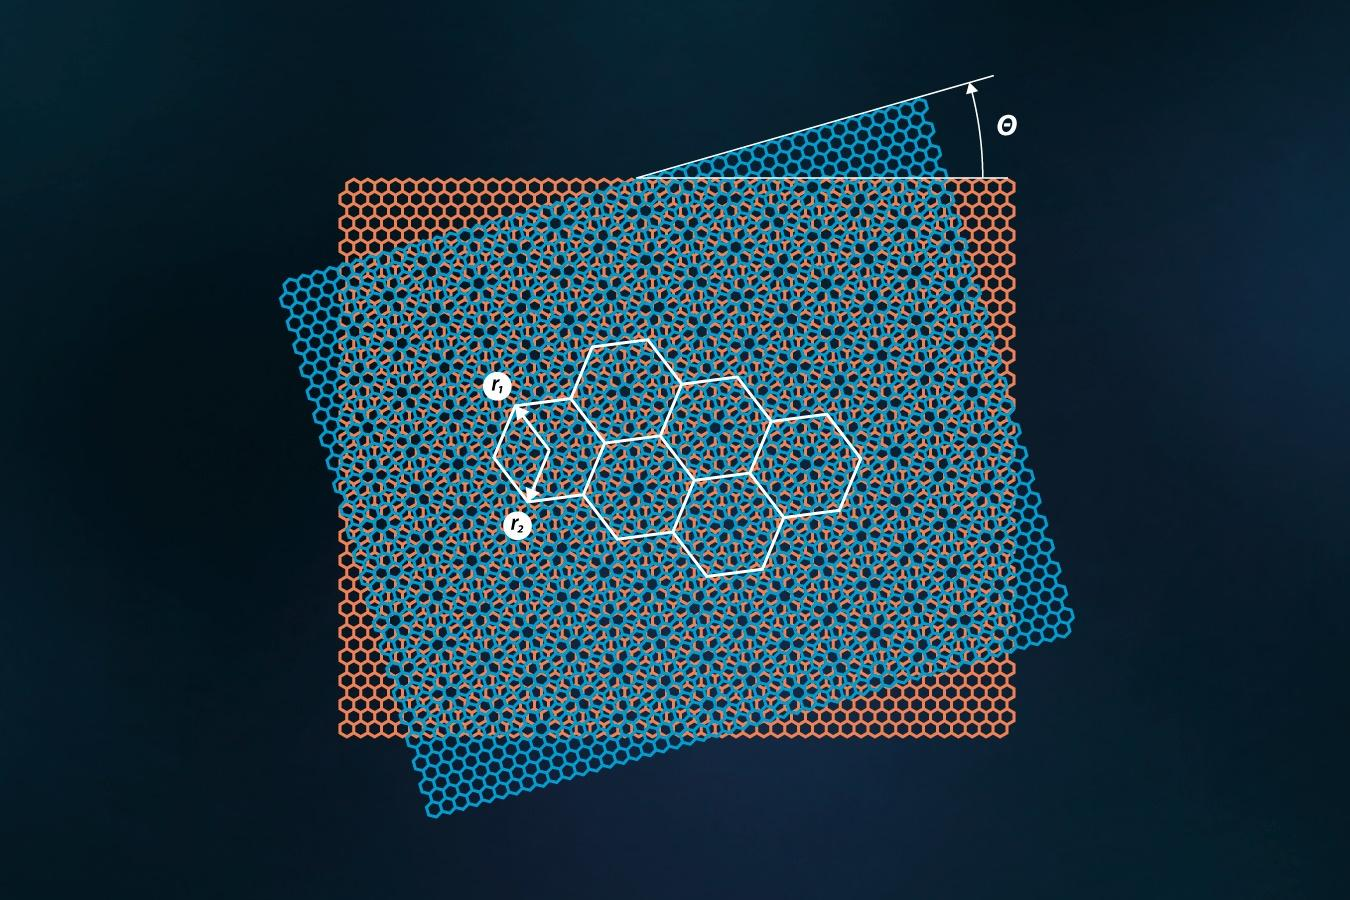 two_layer_graphene_2.jpg